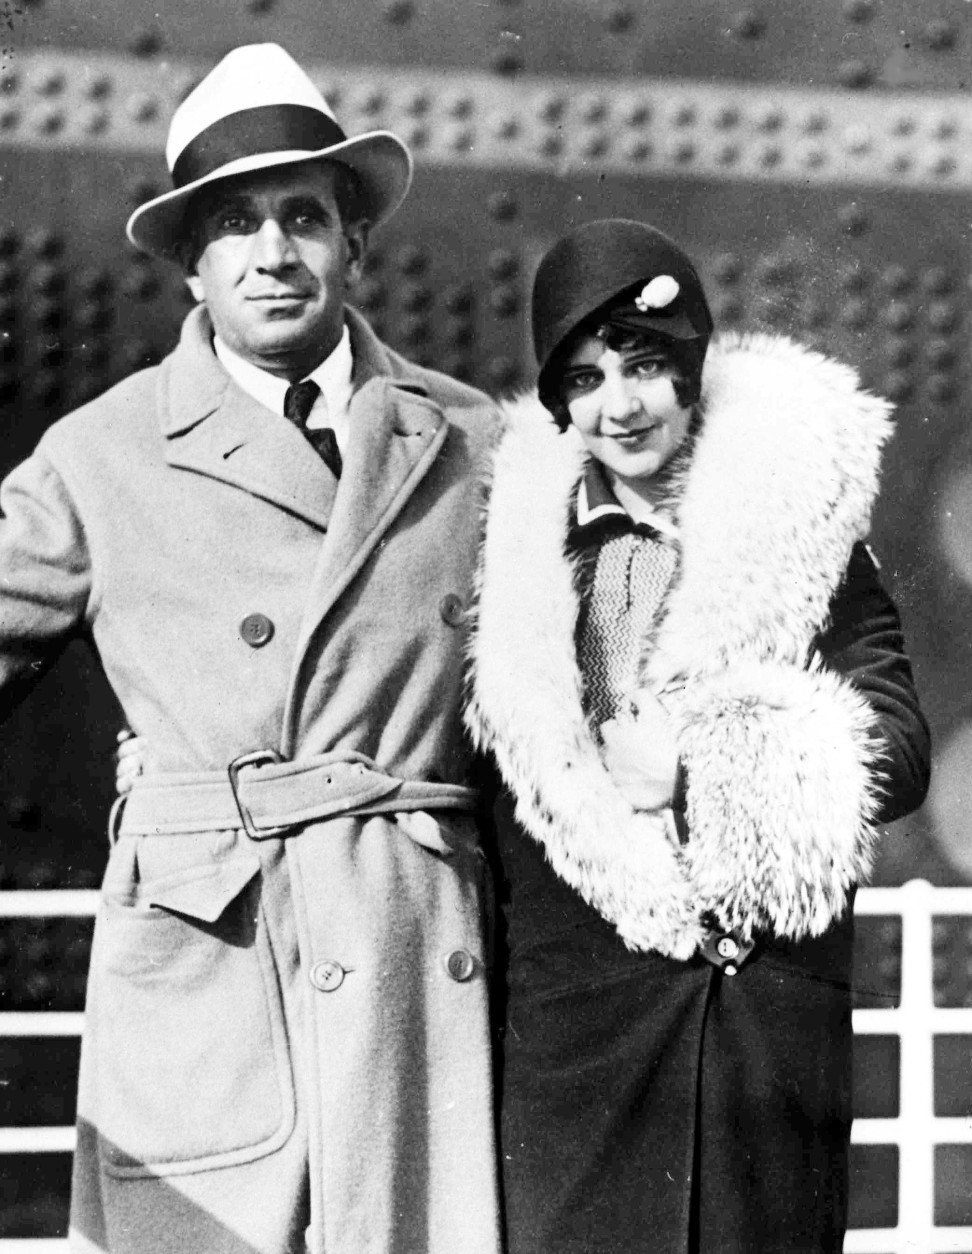 American actor and singer Al Jolson with his wife Ruby after their arrival at Cherbourg Harbour, France, on Aug. 29, 1928. (AP Photo)